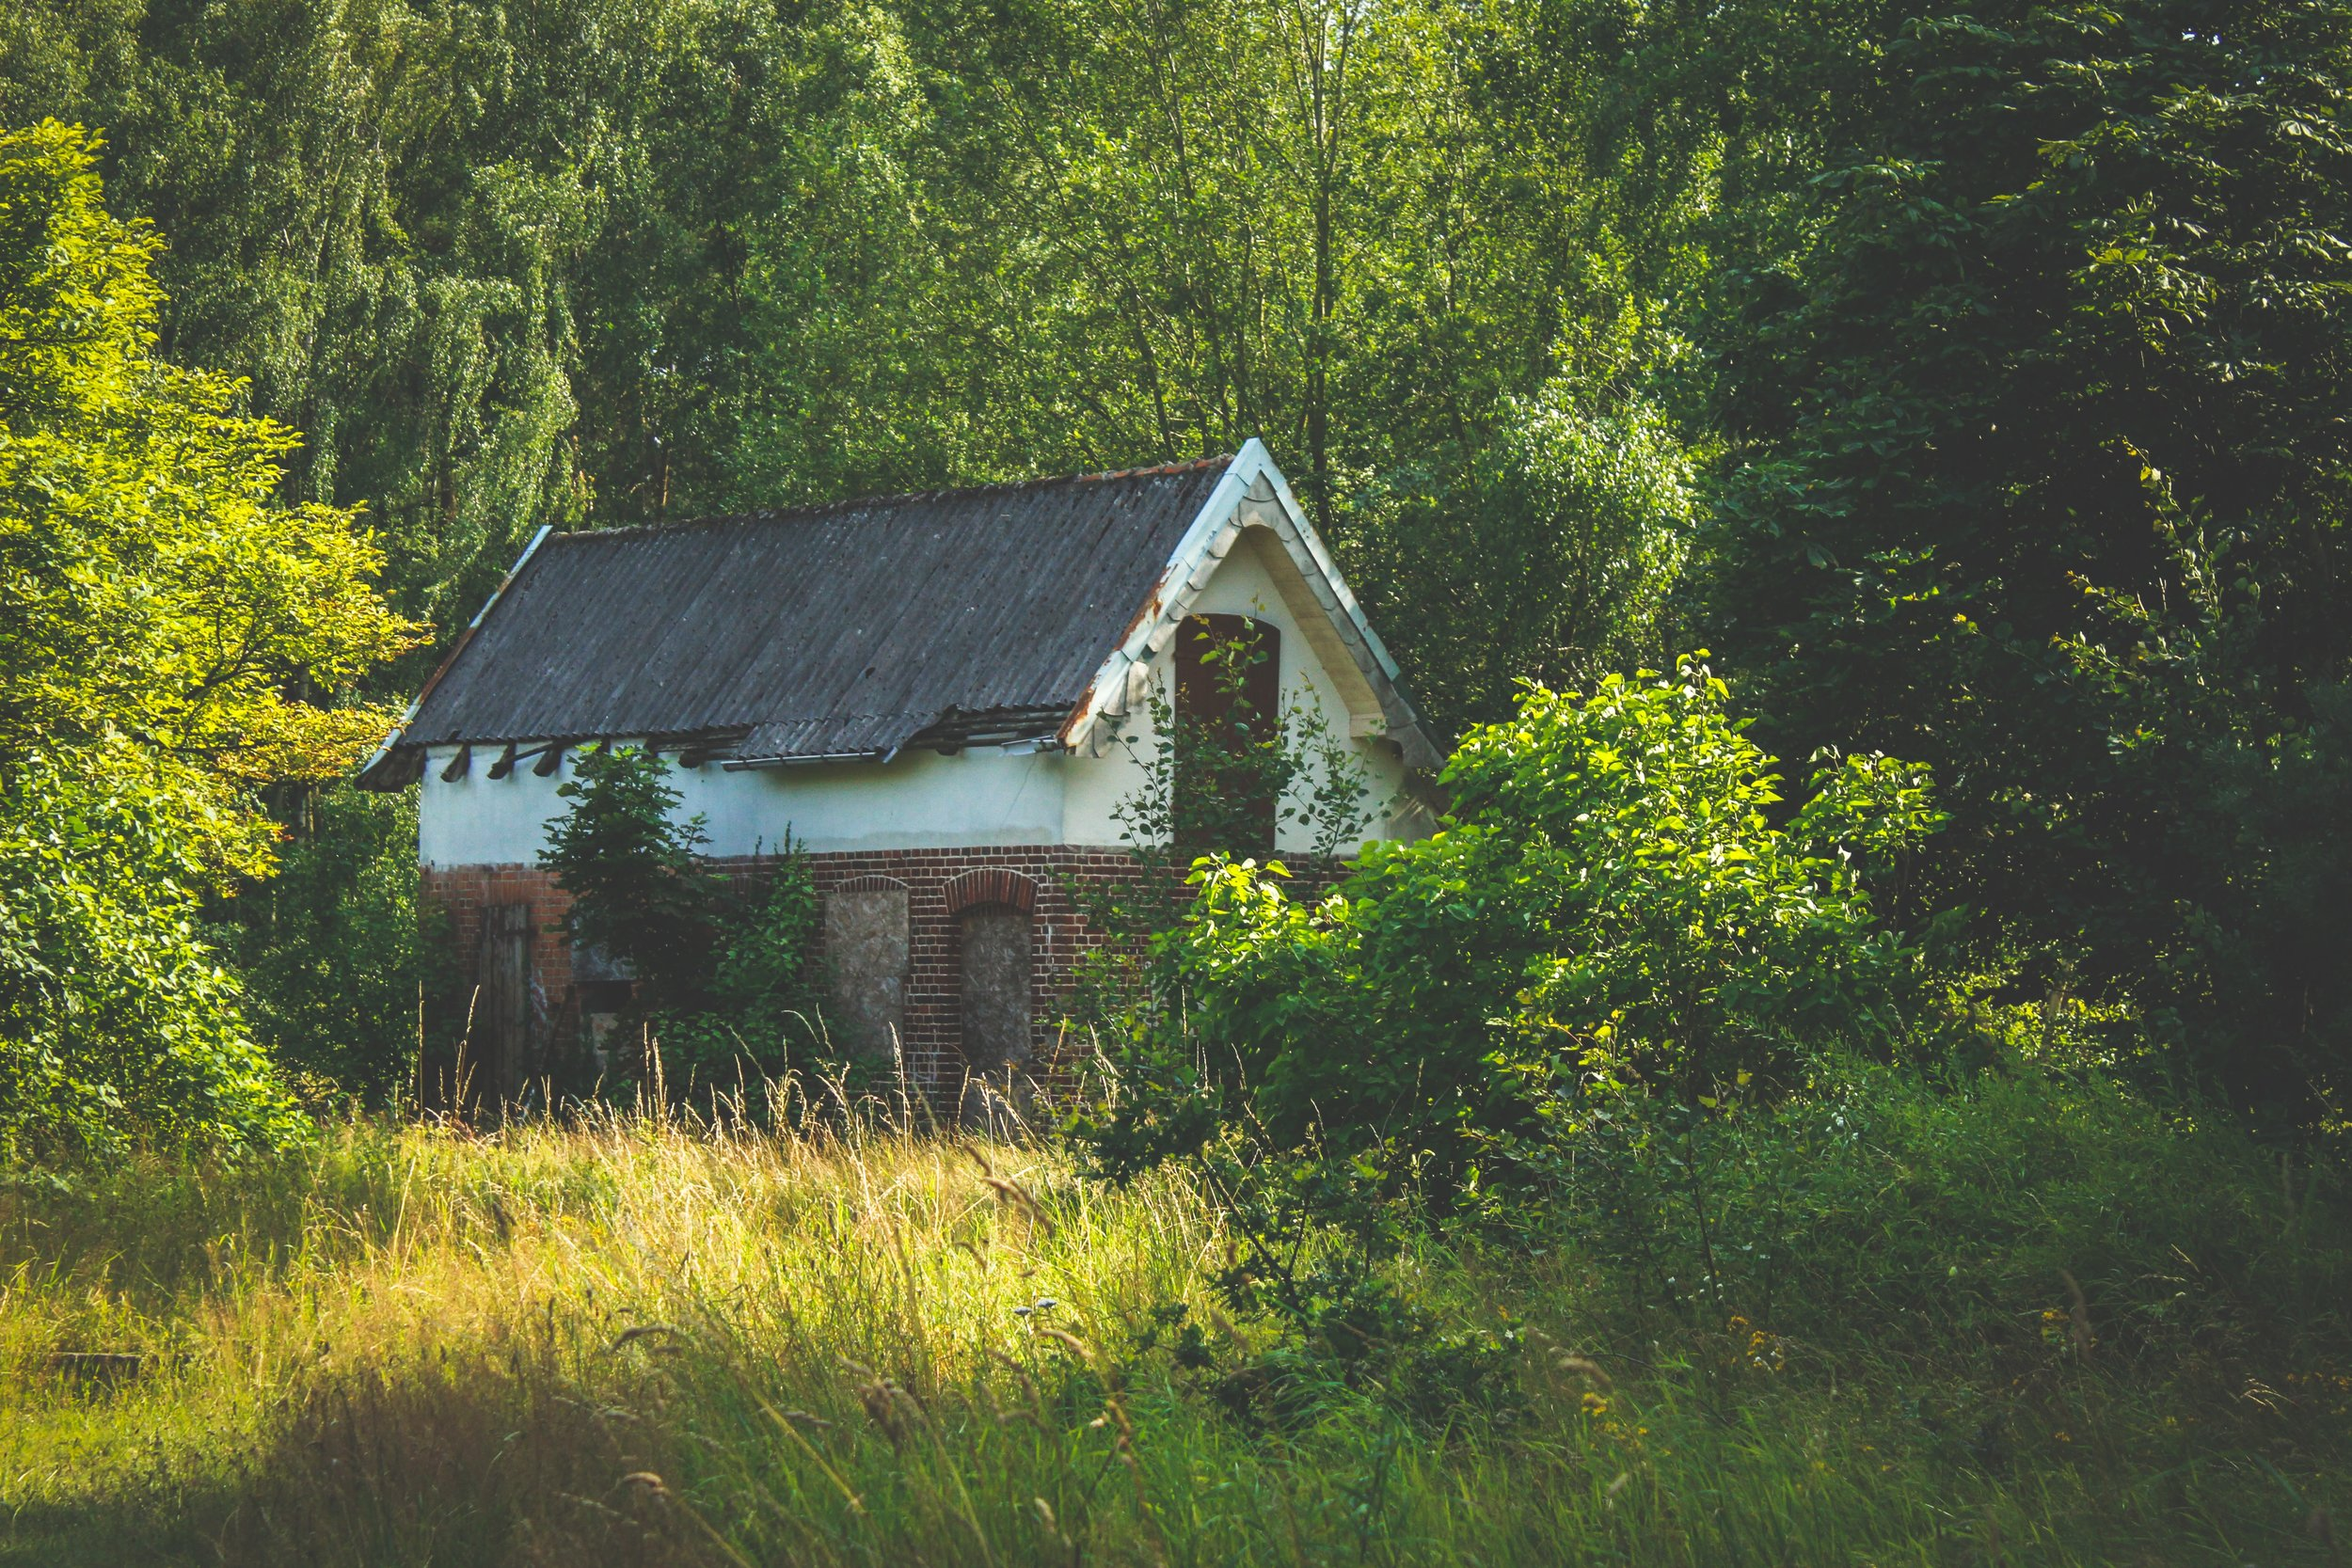 distressed-property-old-house.jpg